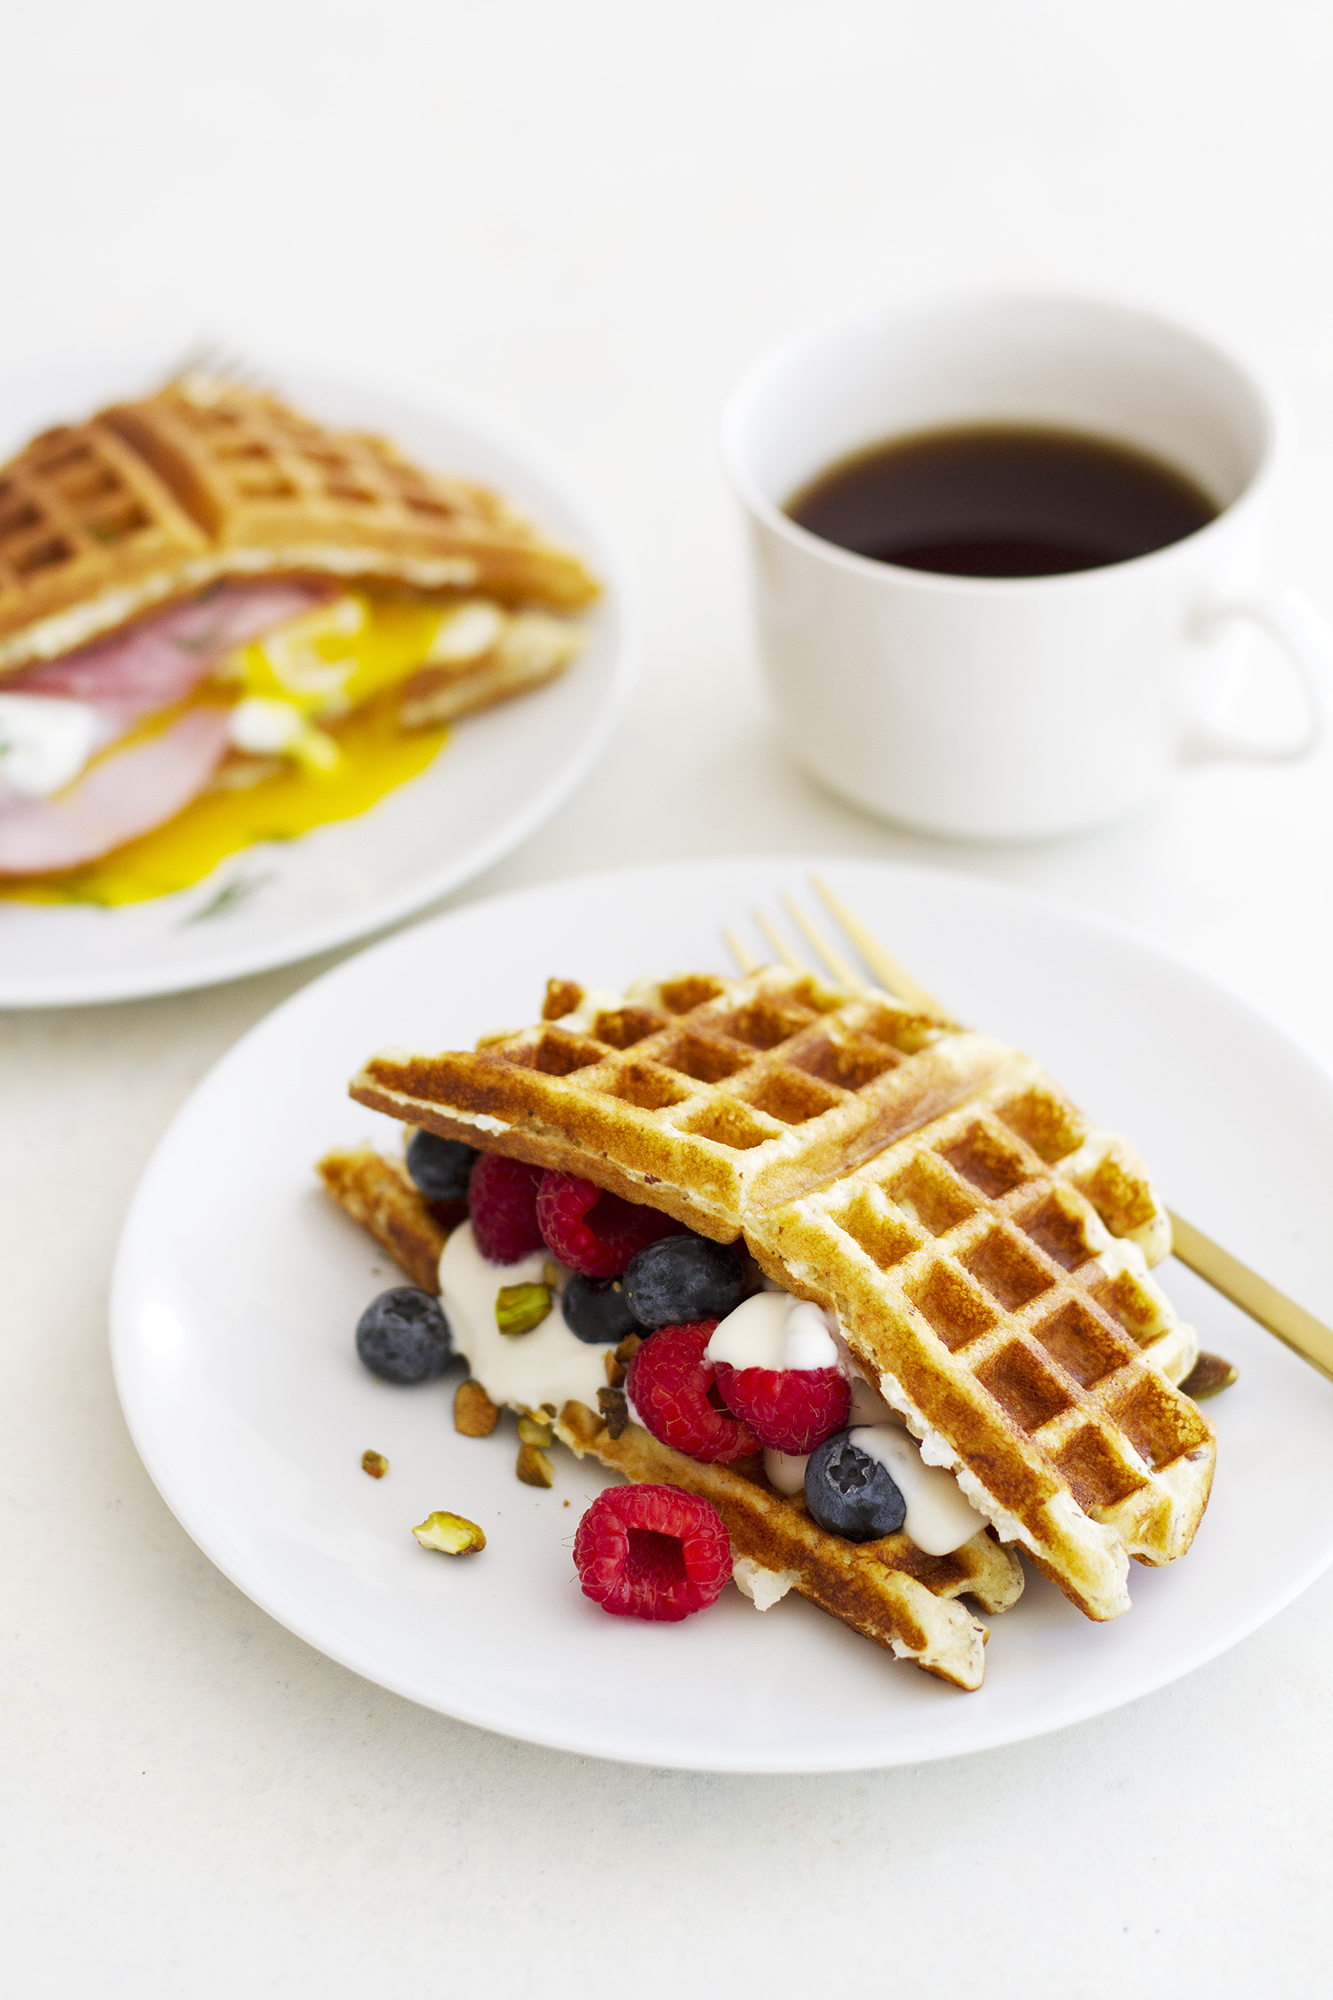 Sweet and Savory Gluten Free Waffle Breakfast Sandwiches | girlversusdough.com @girlversusdough